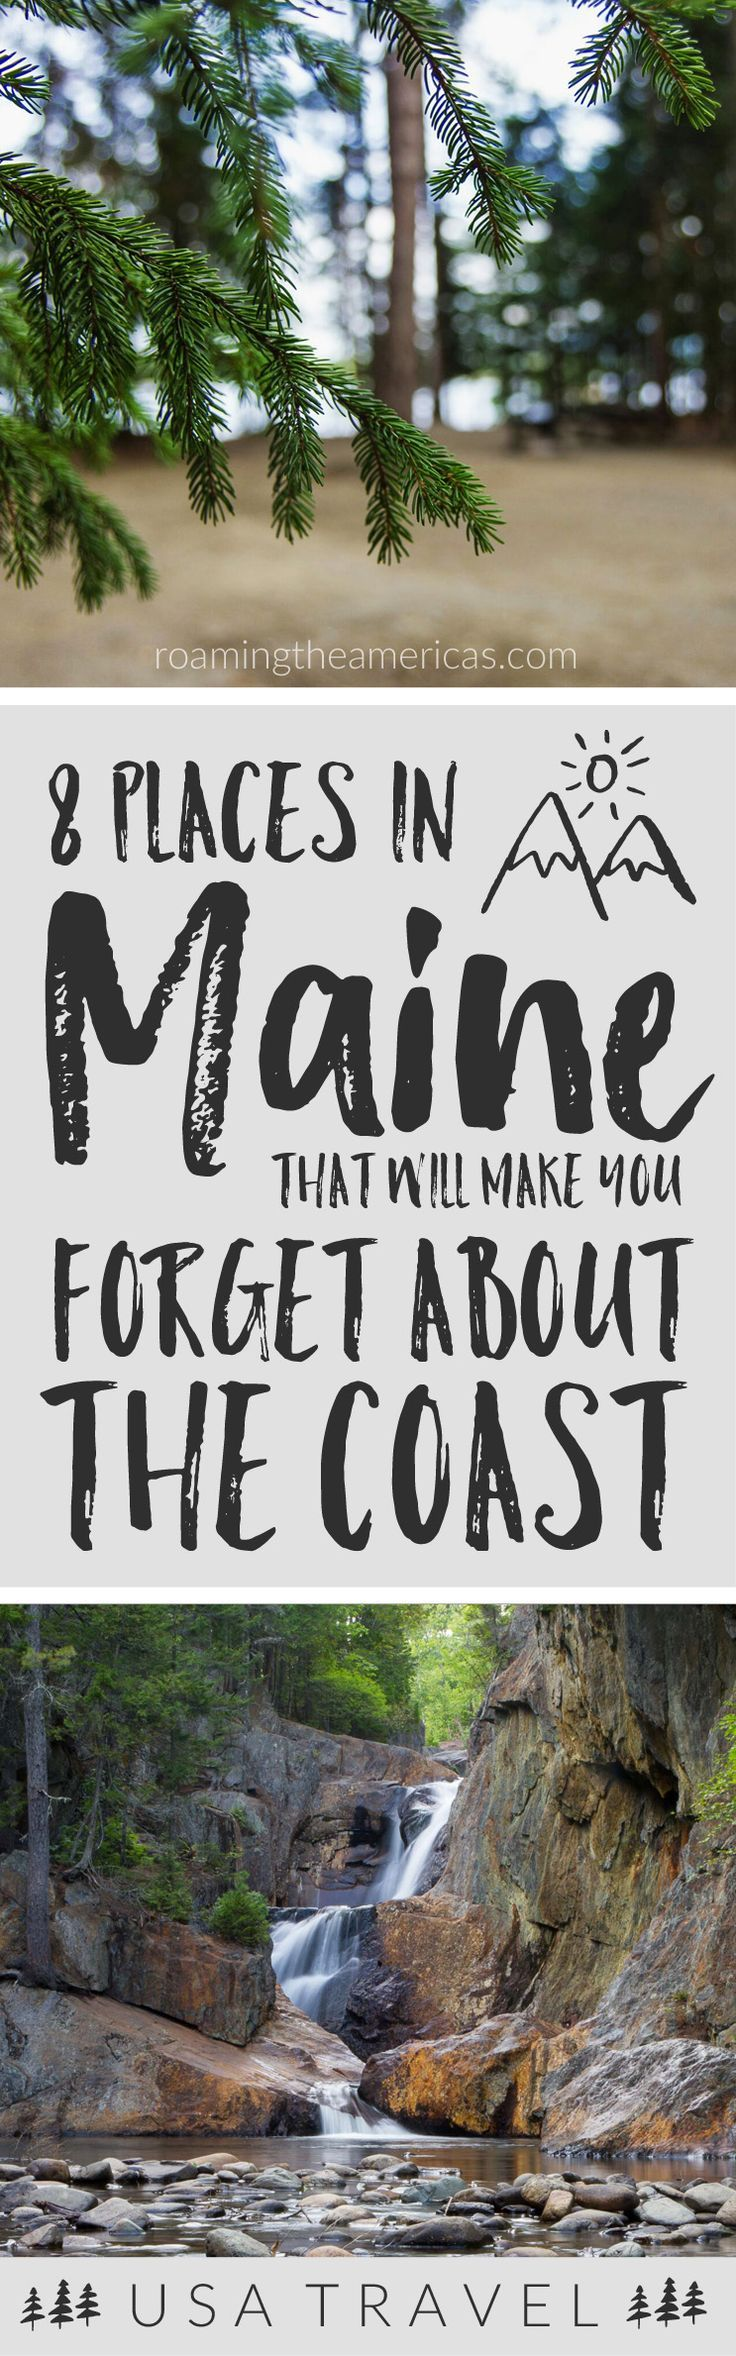 Looking for the best things to do in Maine? If you're craving a quiet, off-the-beaten-path adventure, check out this local's guide for 8 of the best spots in central and western Maine! New England travel   Maine vacation   nature and outdoor adventure   #maine #mainelife #mainevacation #newengland #bucketlist #roadtrip via @roamtheamericas